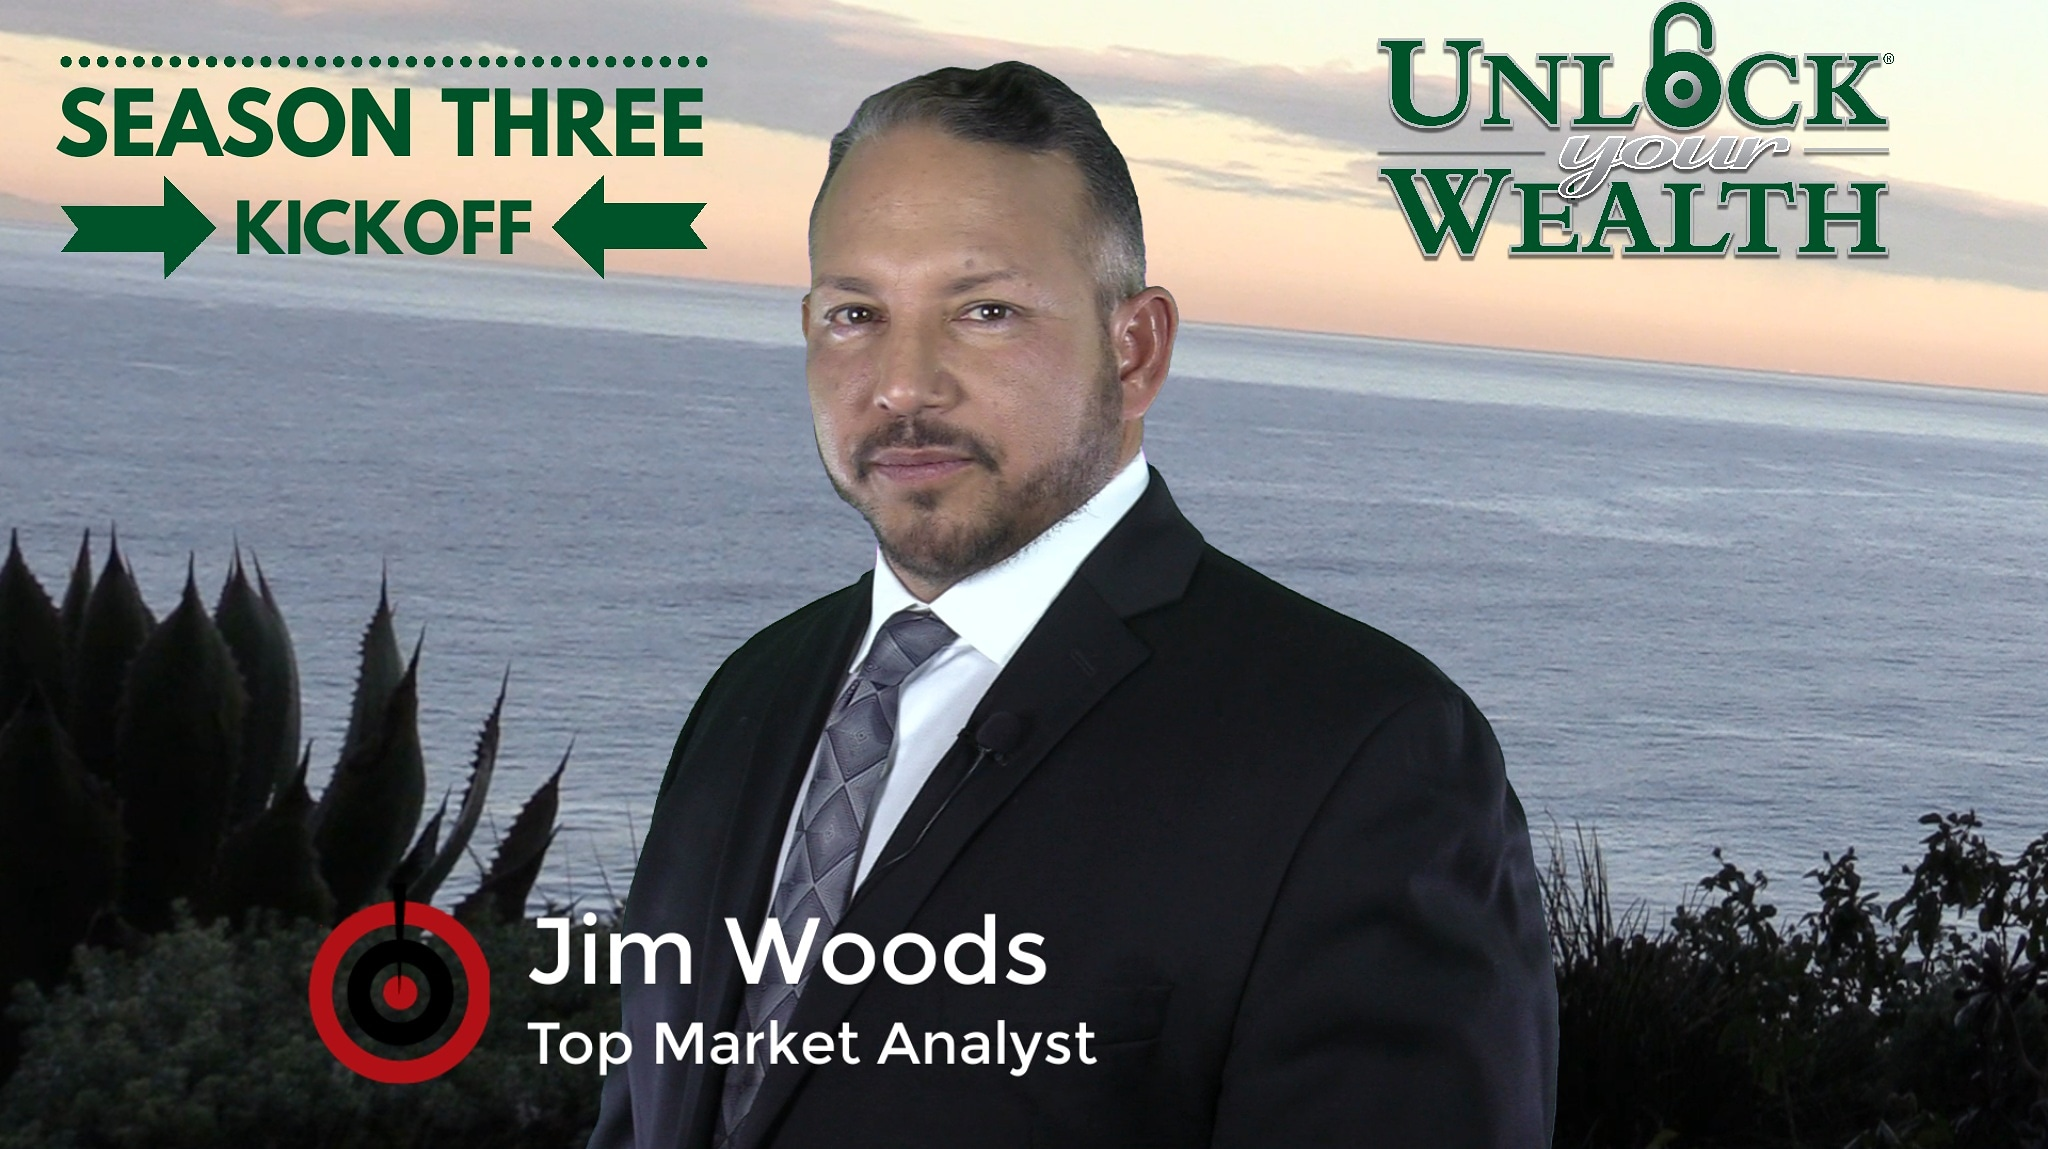 Q4 Recap, Keys To Riches, plus 2019 Investment Strategies Featuring Top 3 Market Analyst Jim Woods